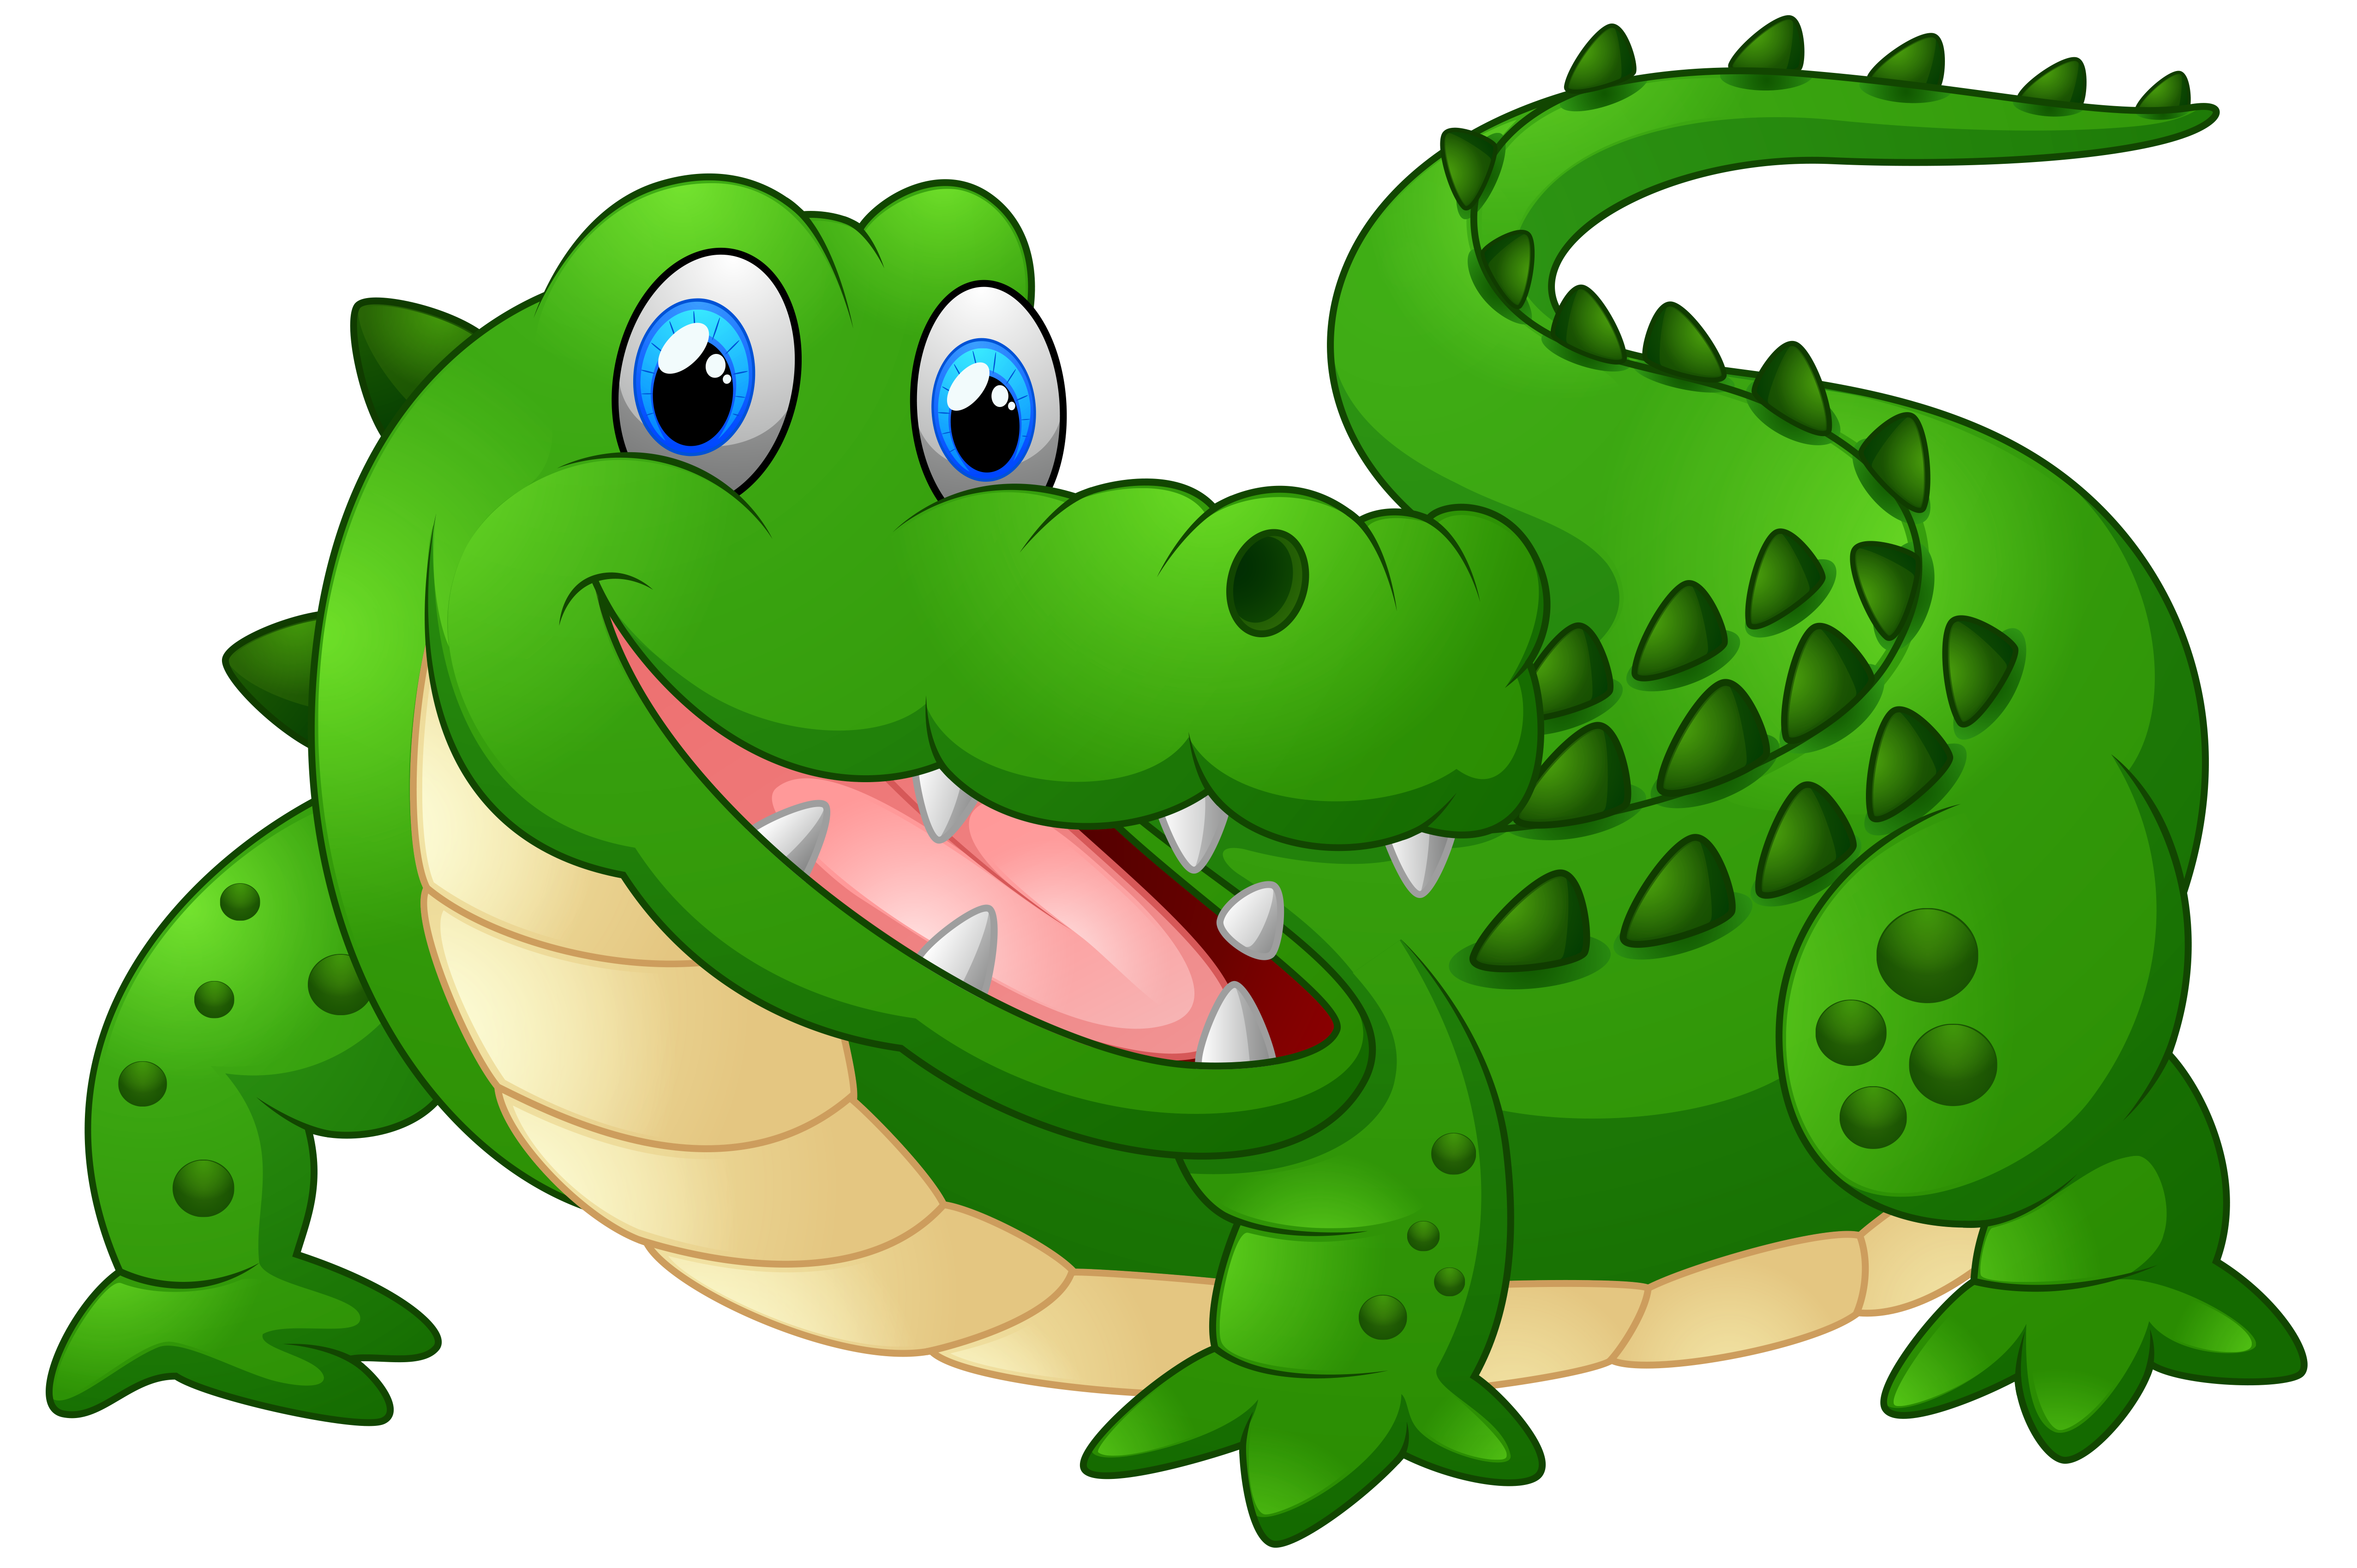 Back clipart crocodile, Back crocodile Transparent FREE for.